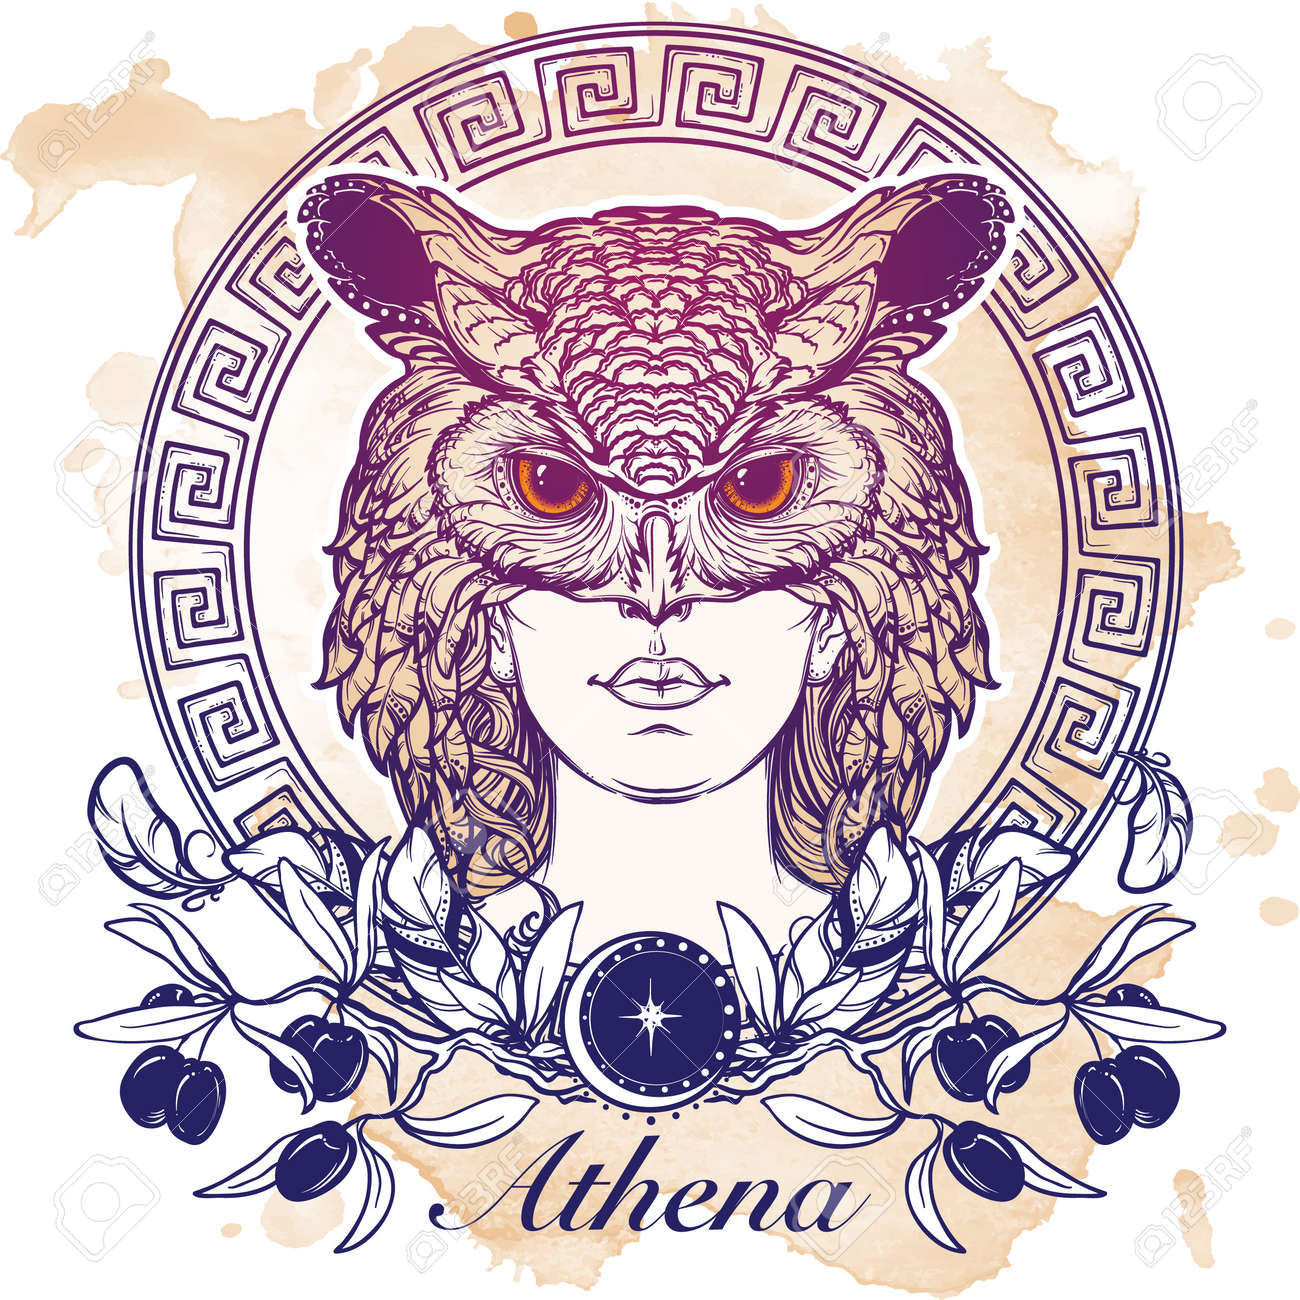 Athena Goddess Of Ancient Greek Myths Beautiful Woman In An